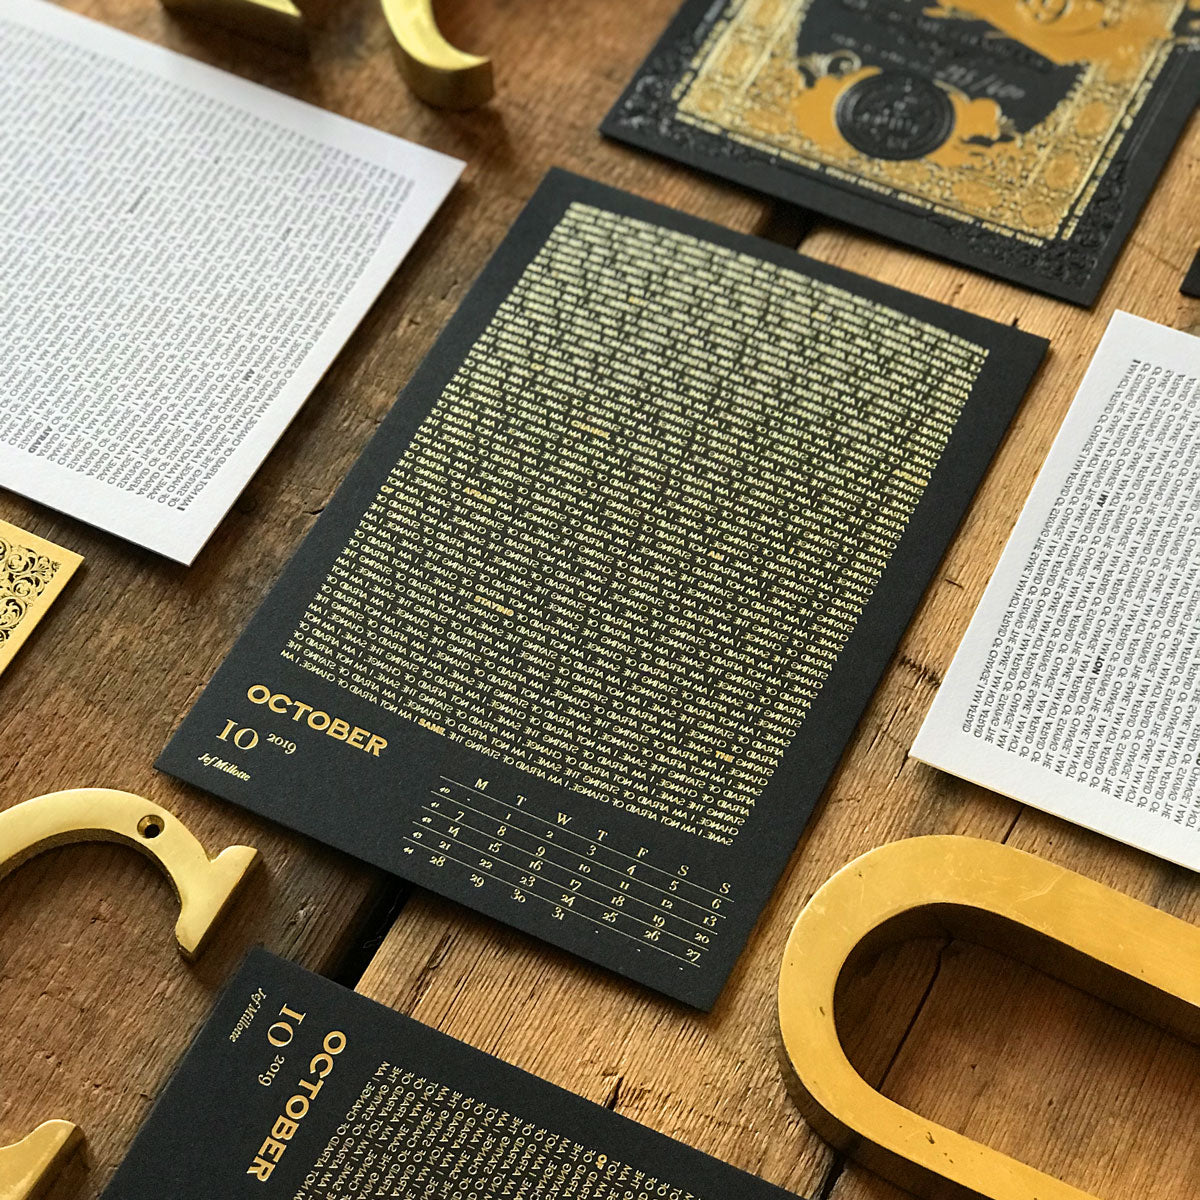 2019 letterpress calendar Artist's proof 10 - hot foil - MR CUP